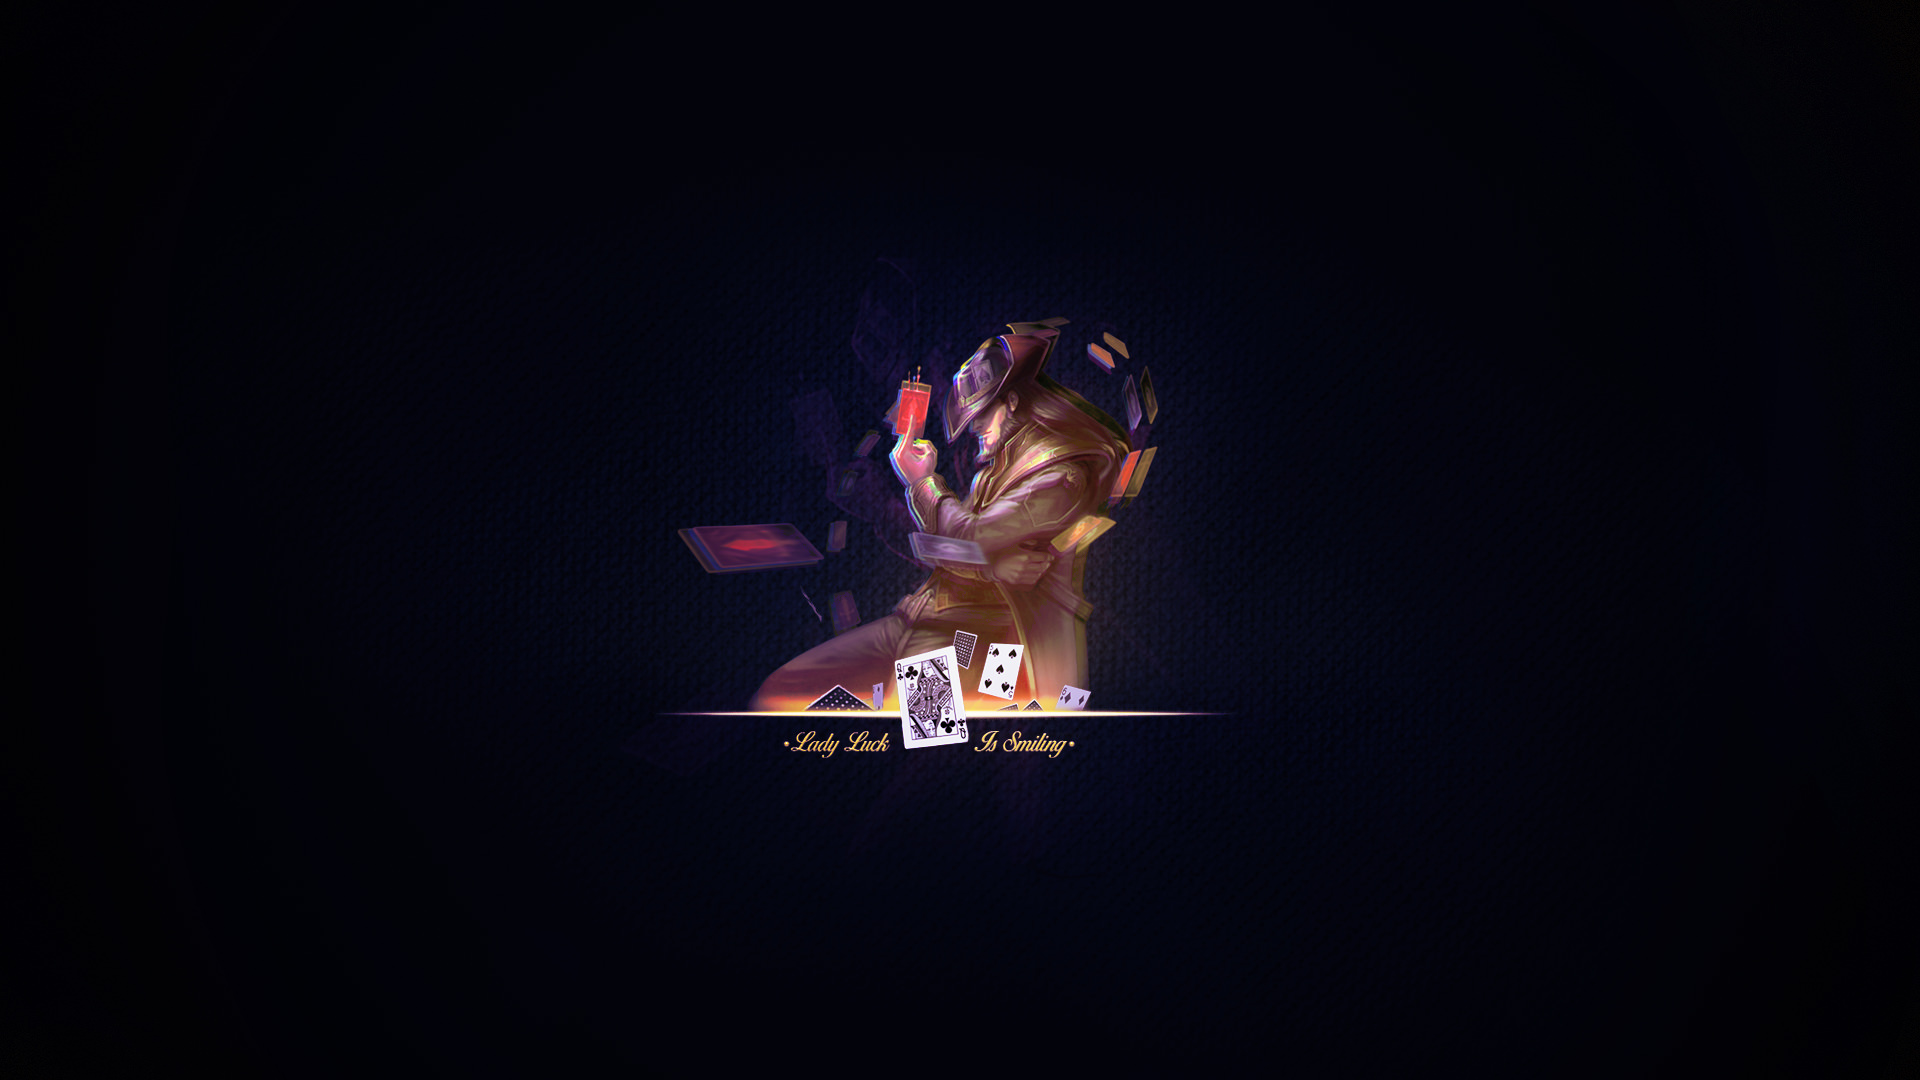 Twisted Fate Wallpaper TwistedFateMains 1920x1080